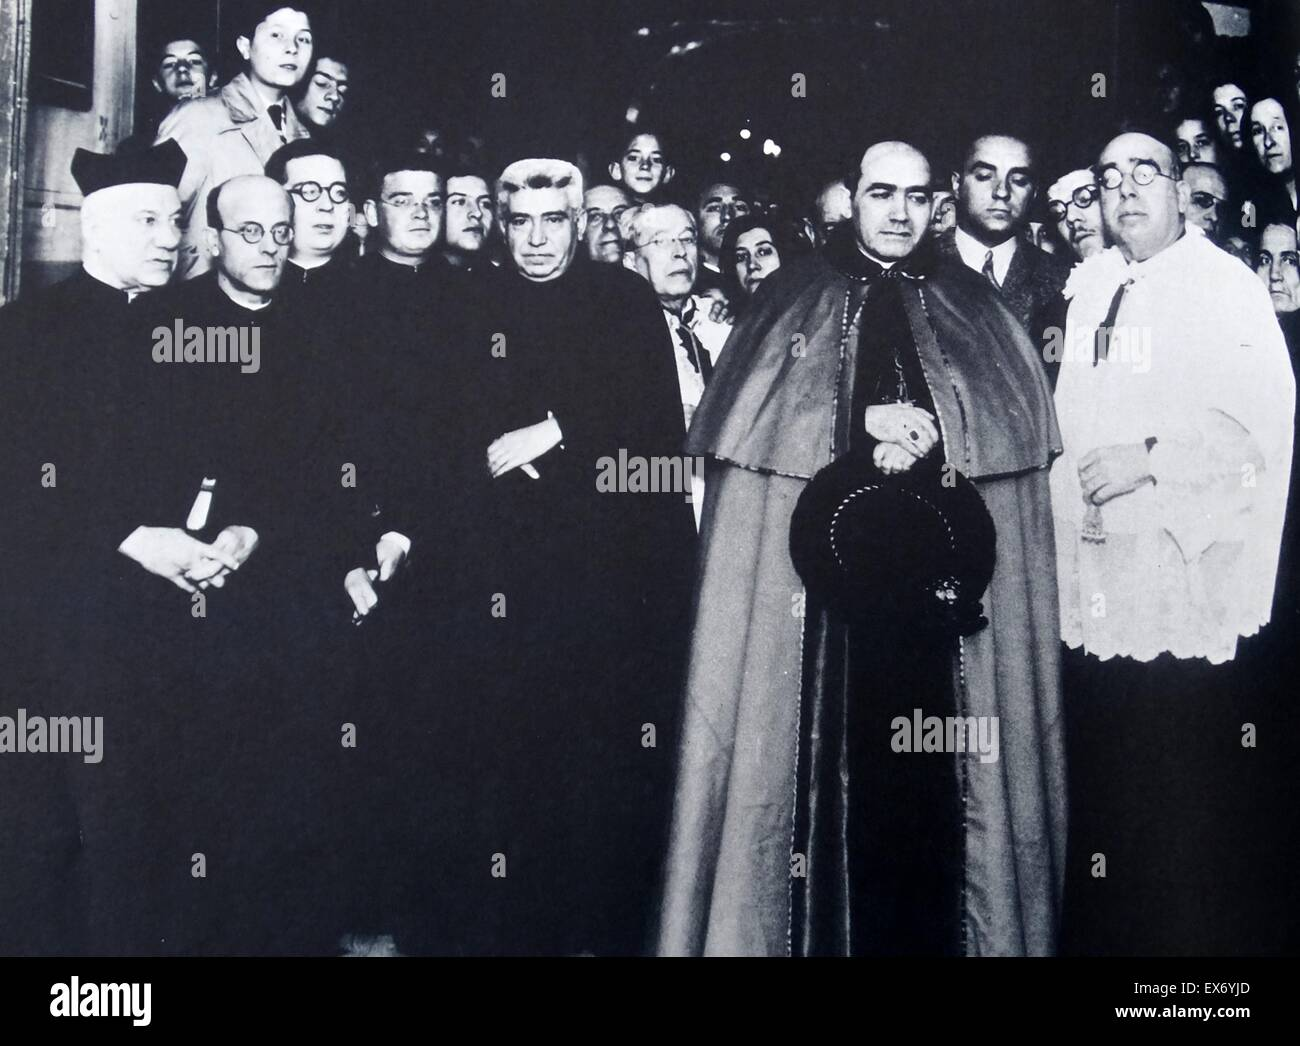 Image result for roman catholic bishop spain 1937